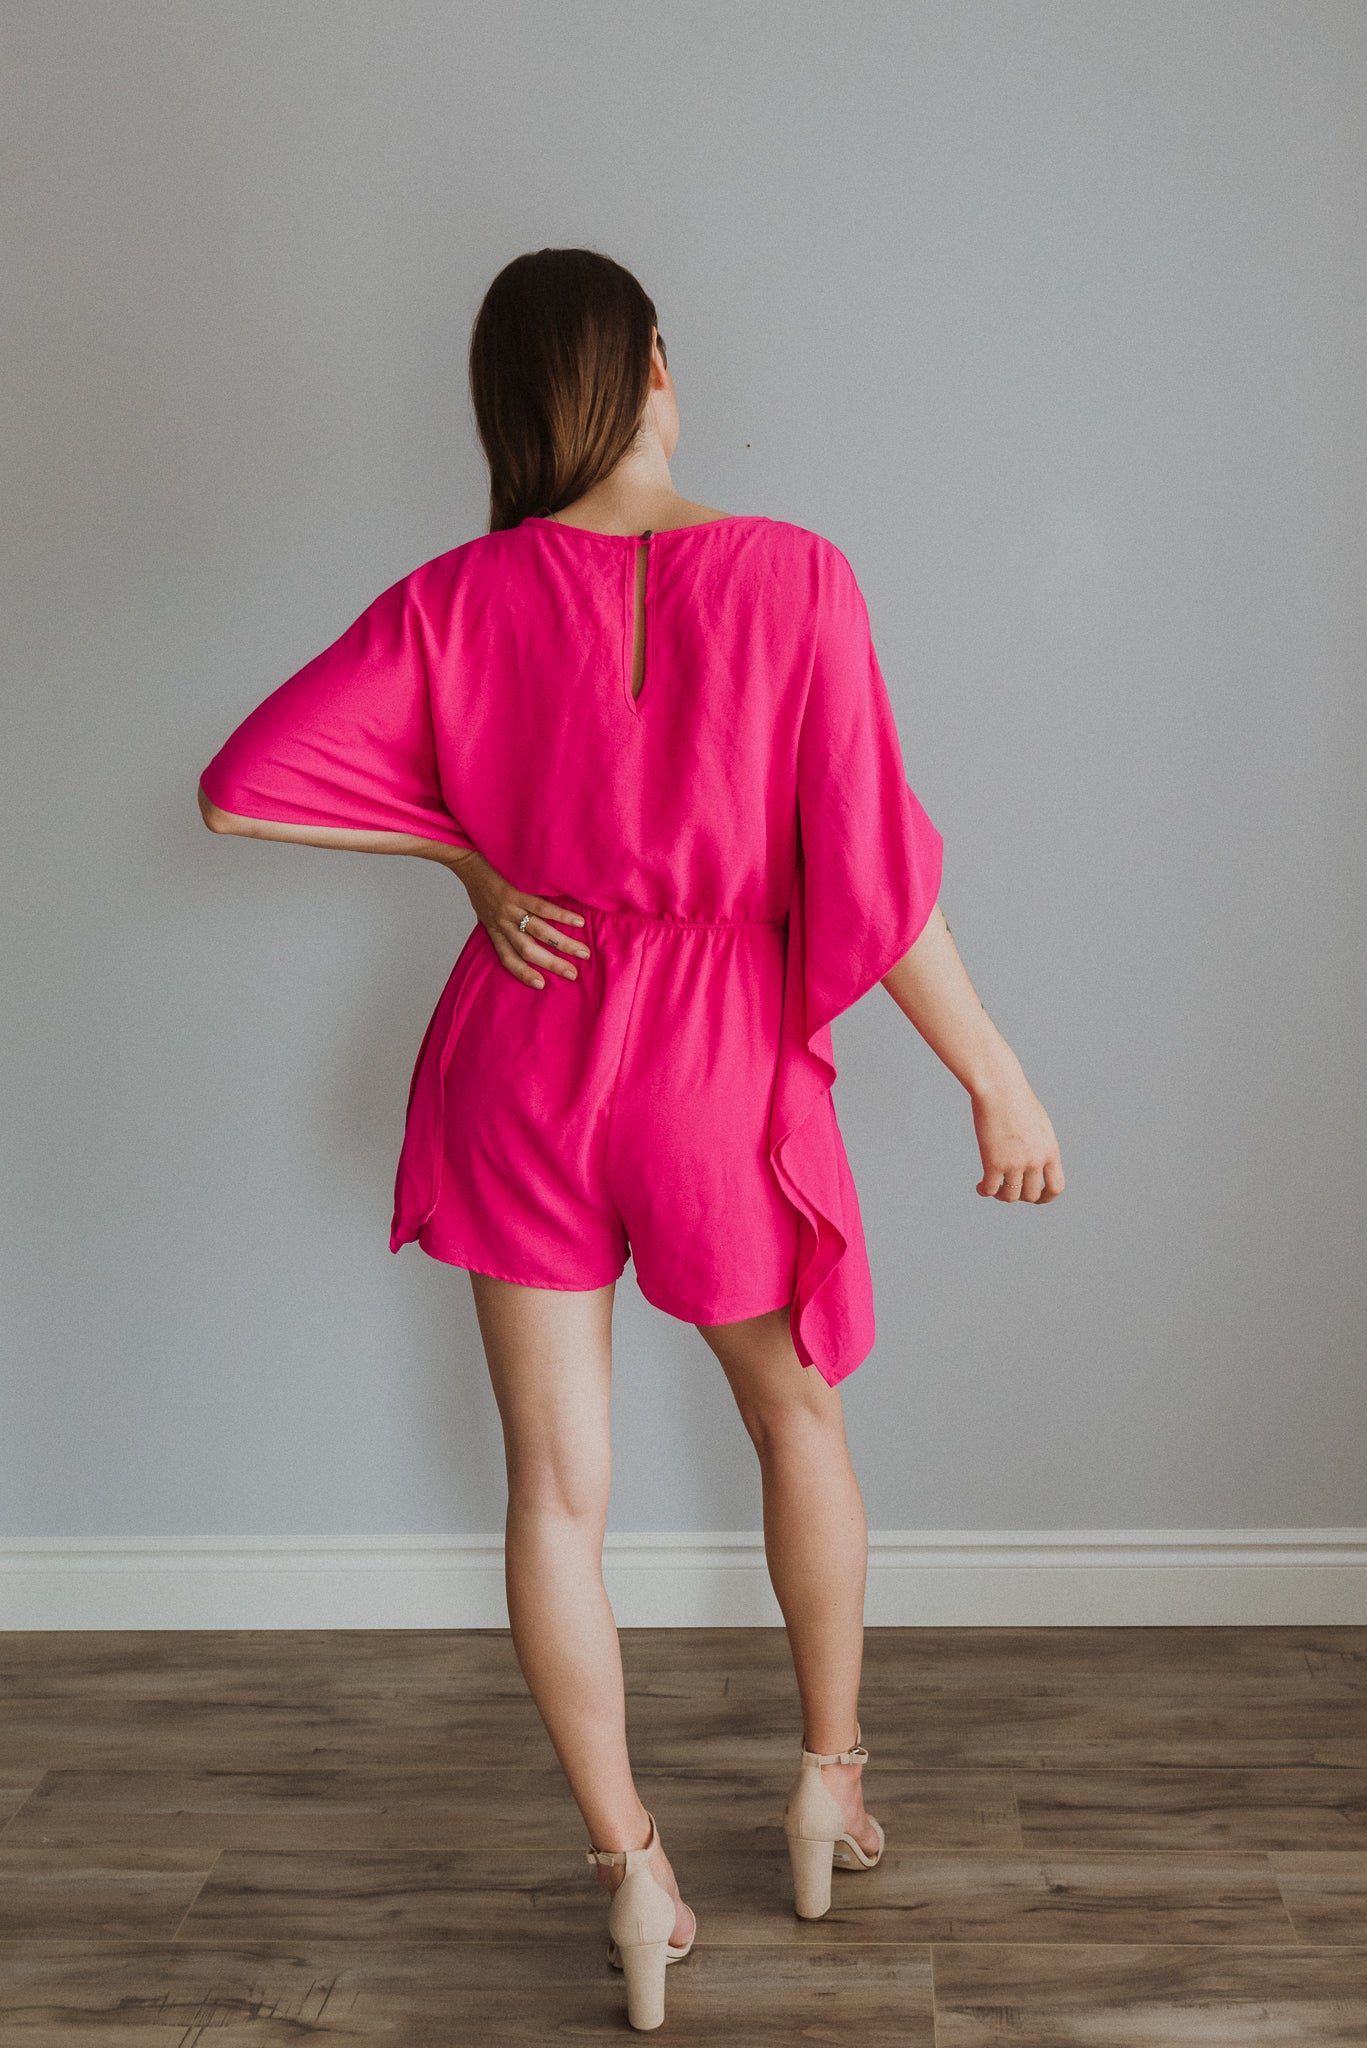 •sold out• Summer Loving Kimono Romper in Fuchsia